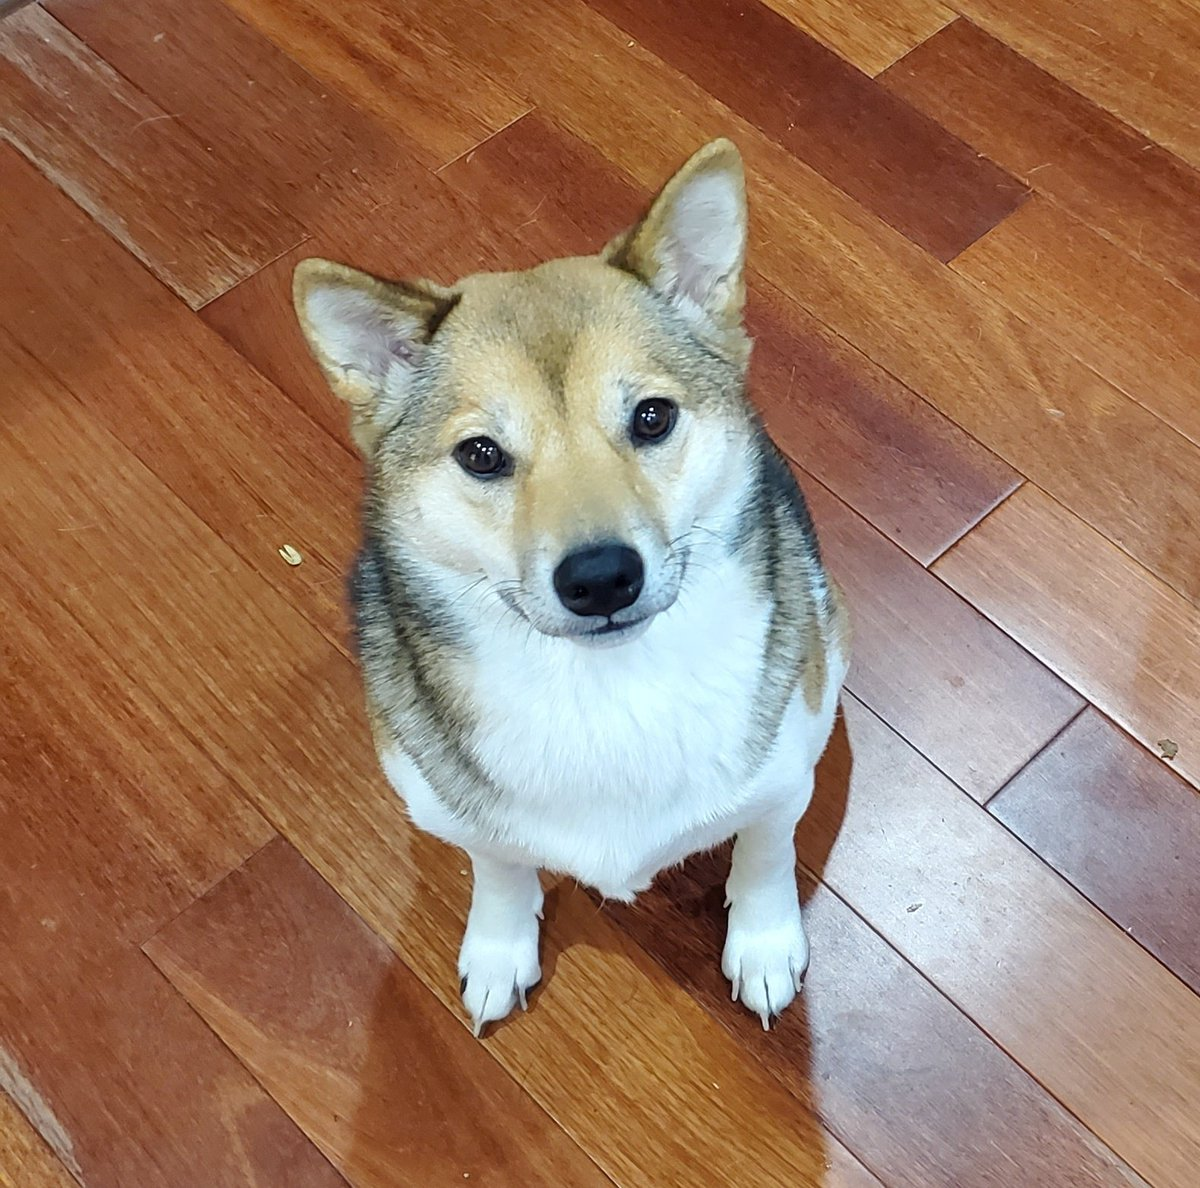 I left for 30 minutes. She was so distraught she pulled apart 3 skeins of yarn and chewed on a cushioned crochet hook.   #shiba #doggopic.twitter.com/GP6gFBa5G7